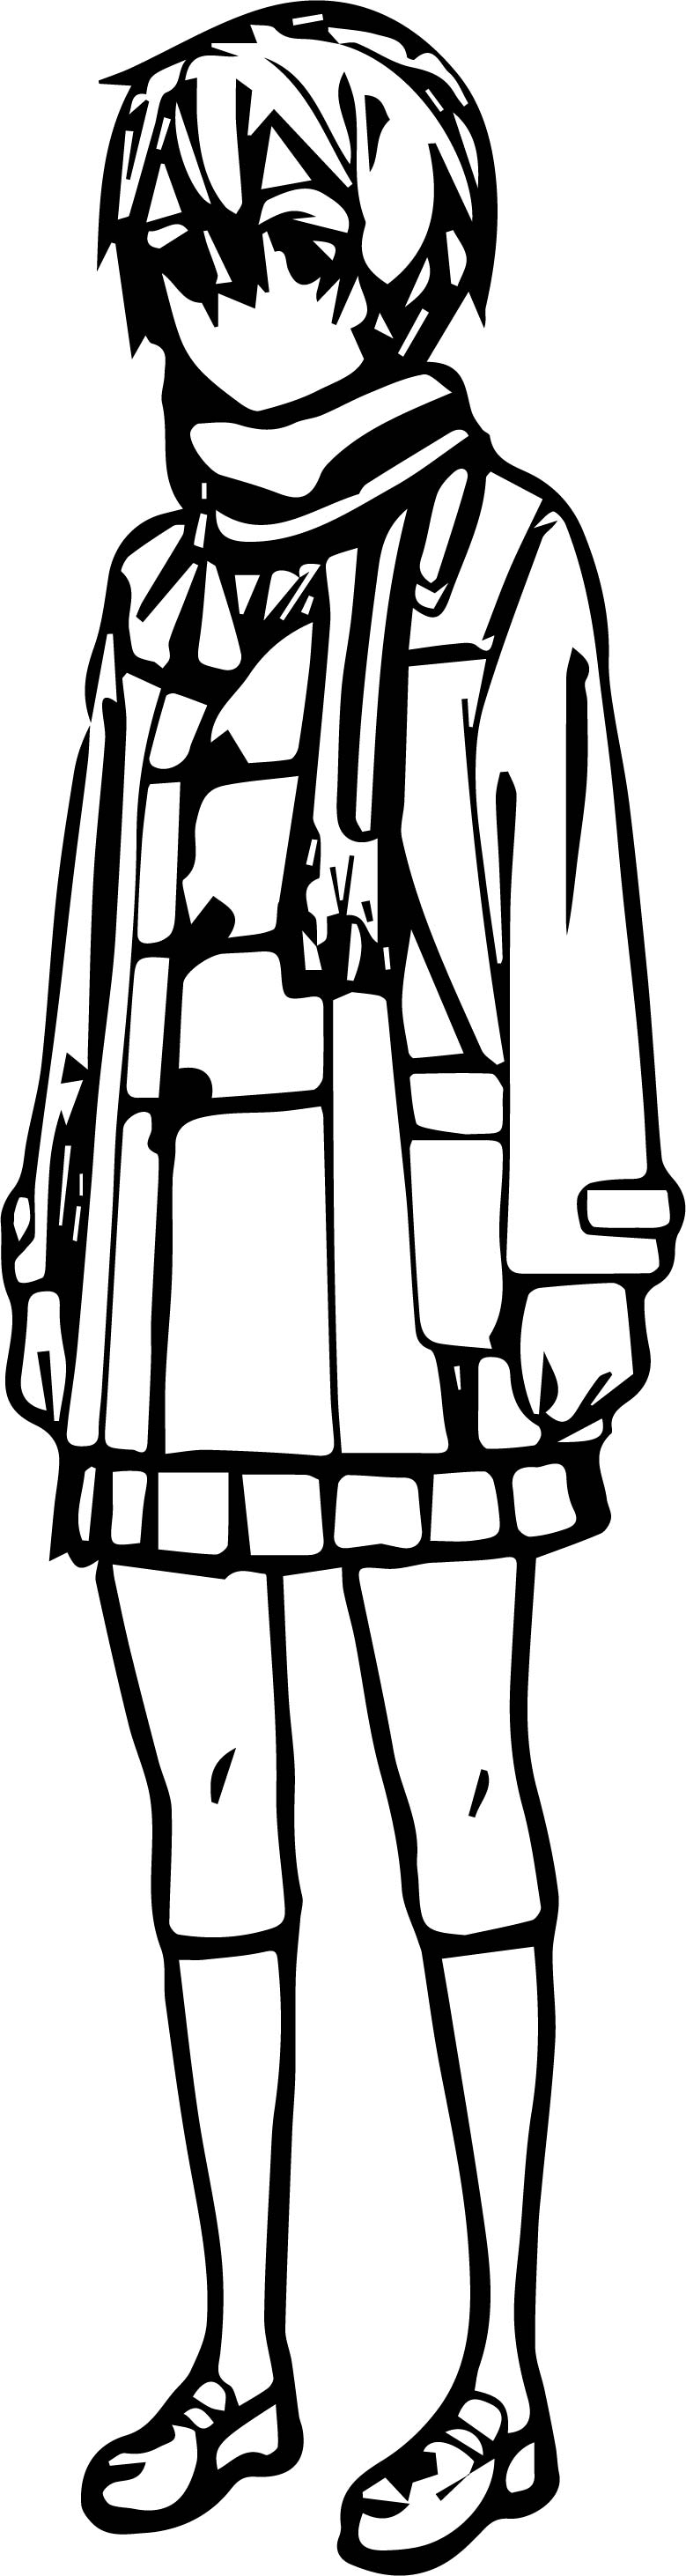 Shino Character Design Coloring Page